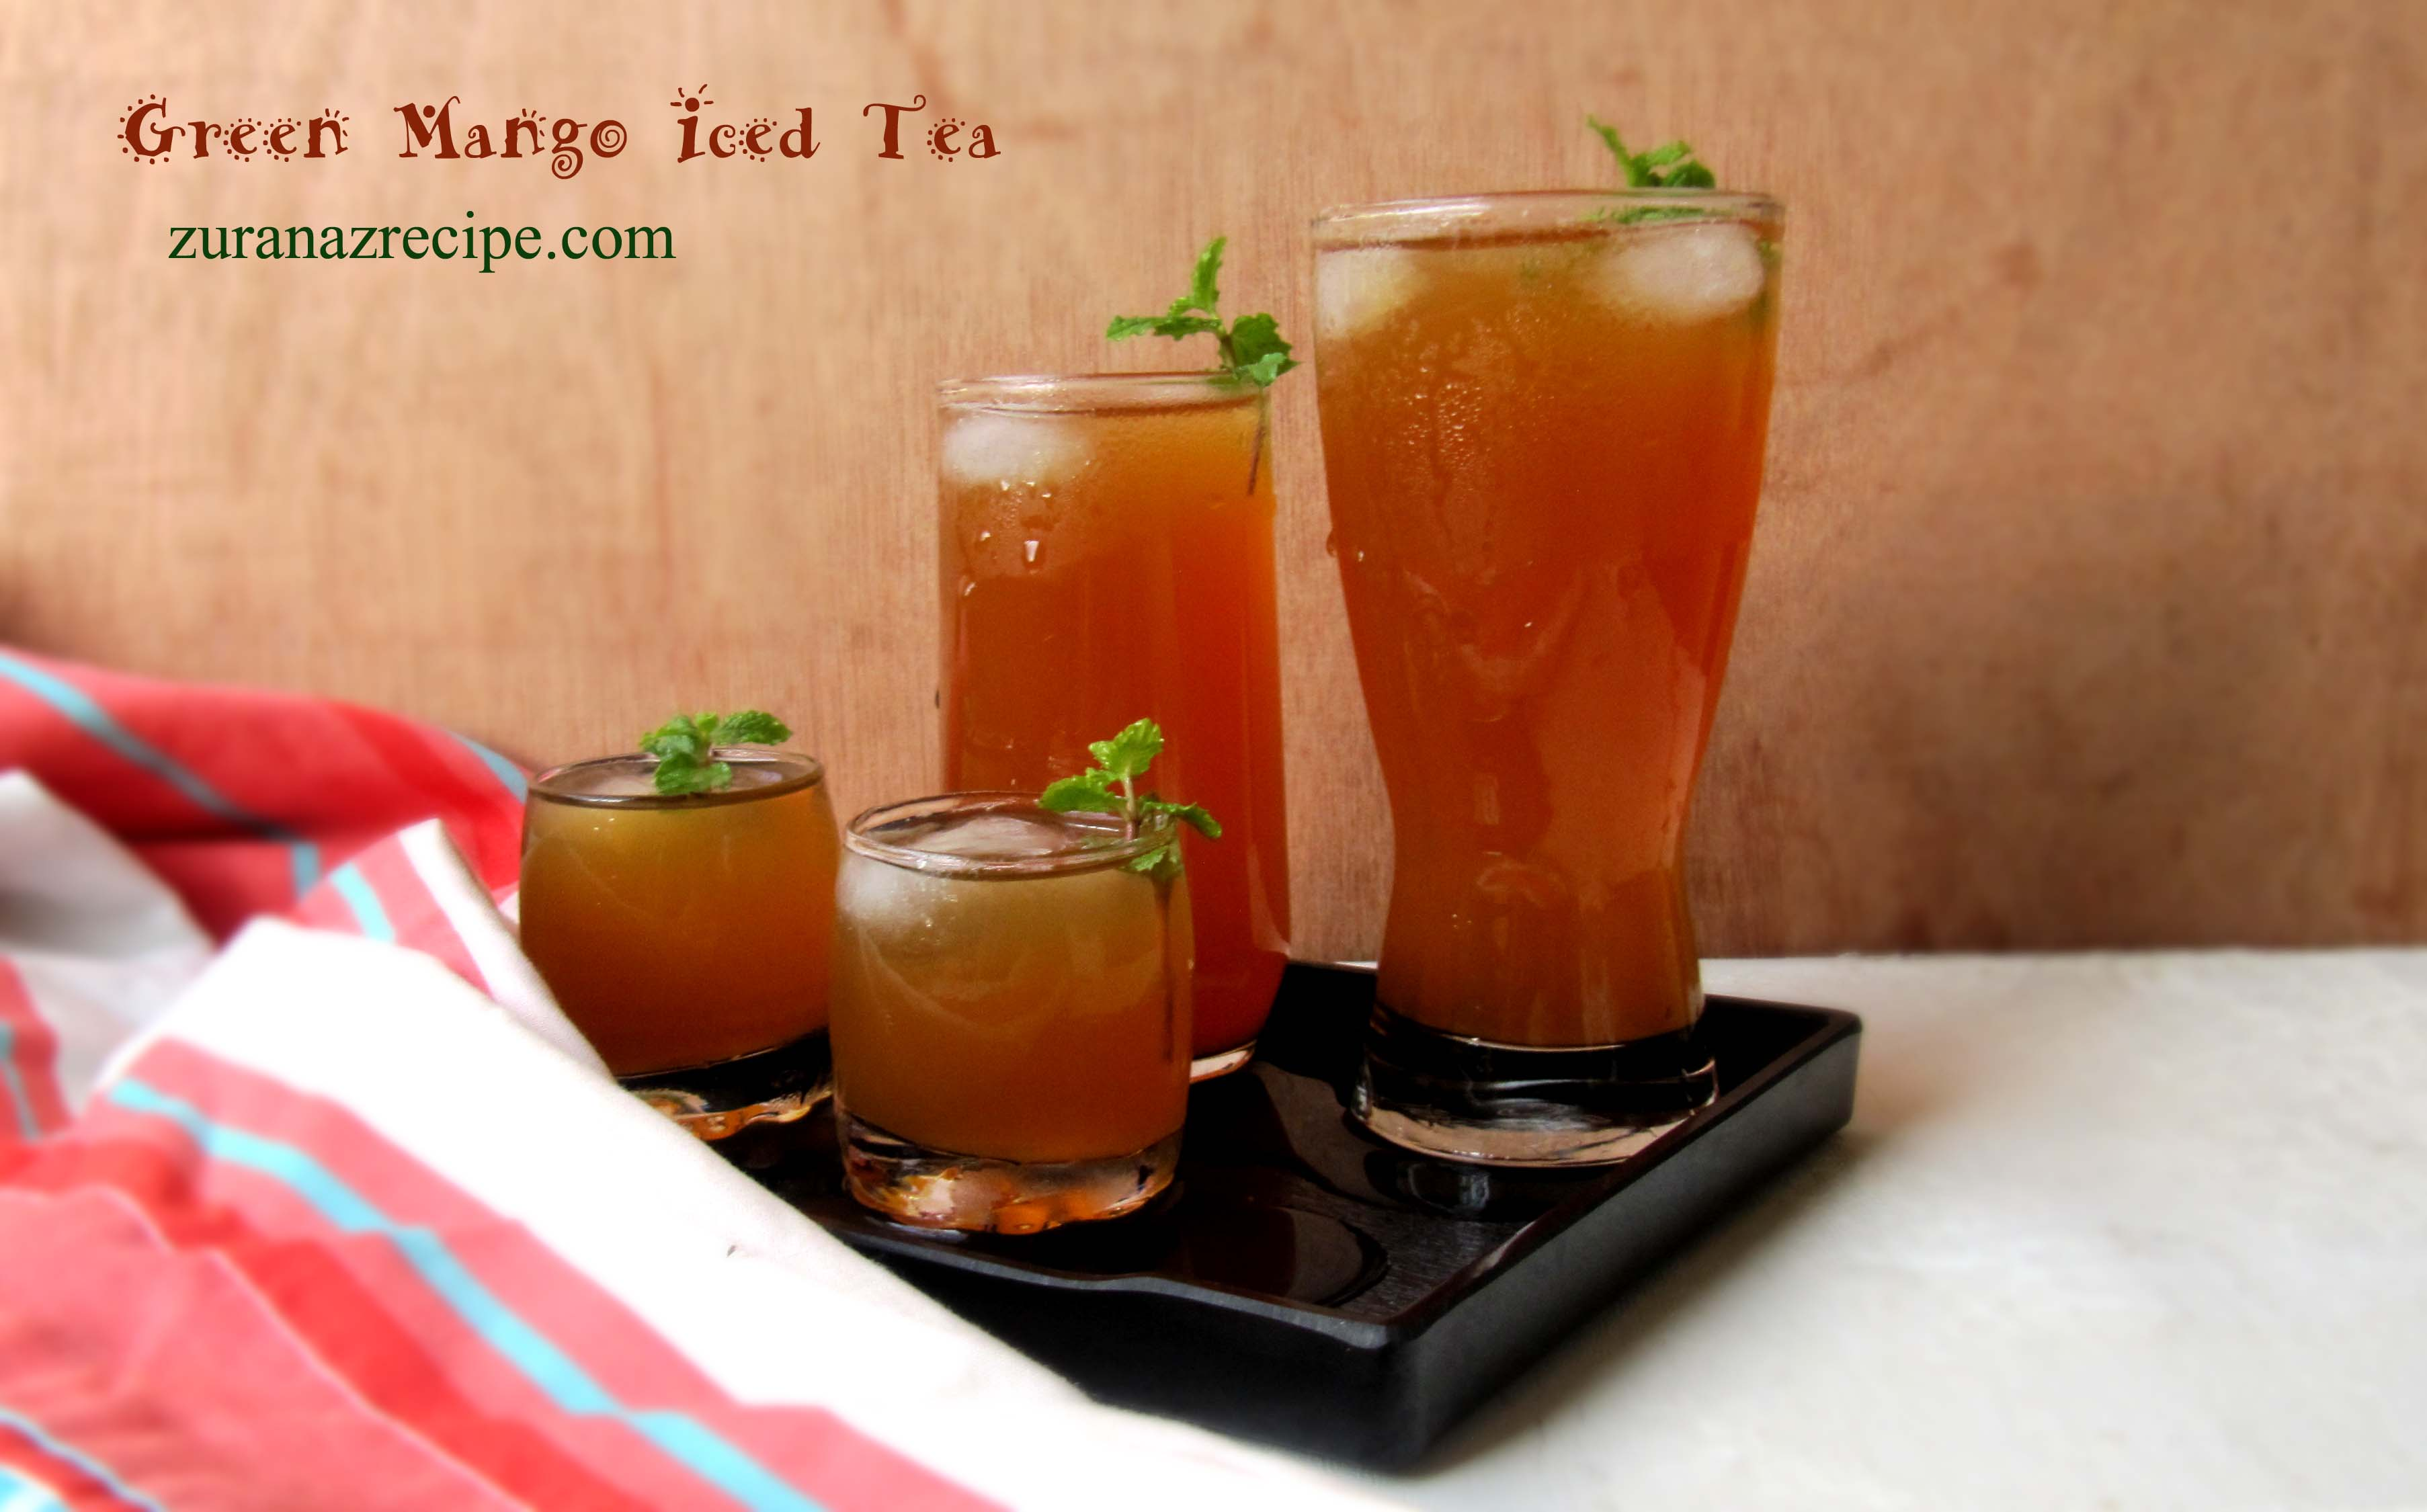 Green Mango Iced Tea